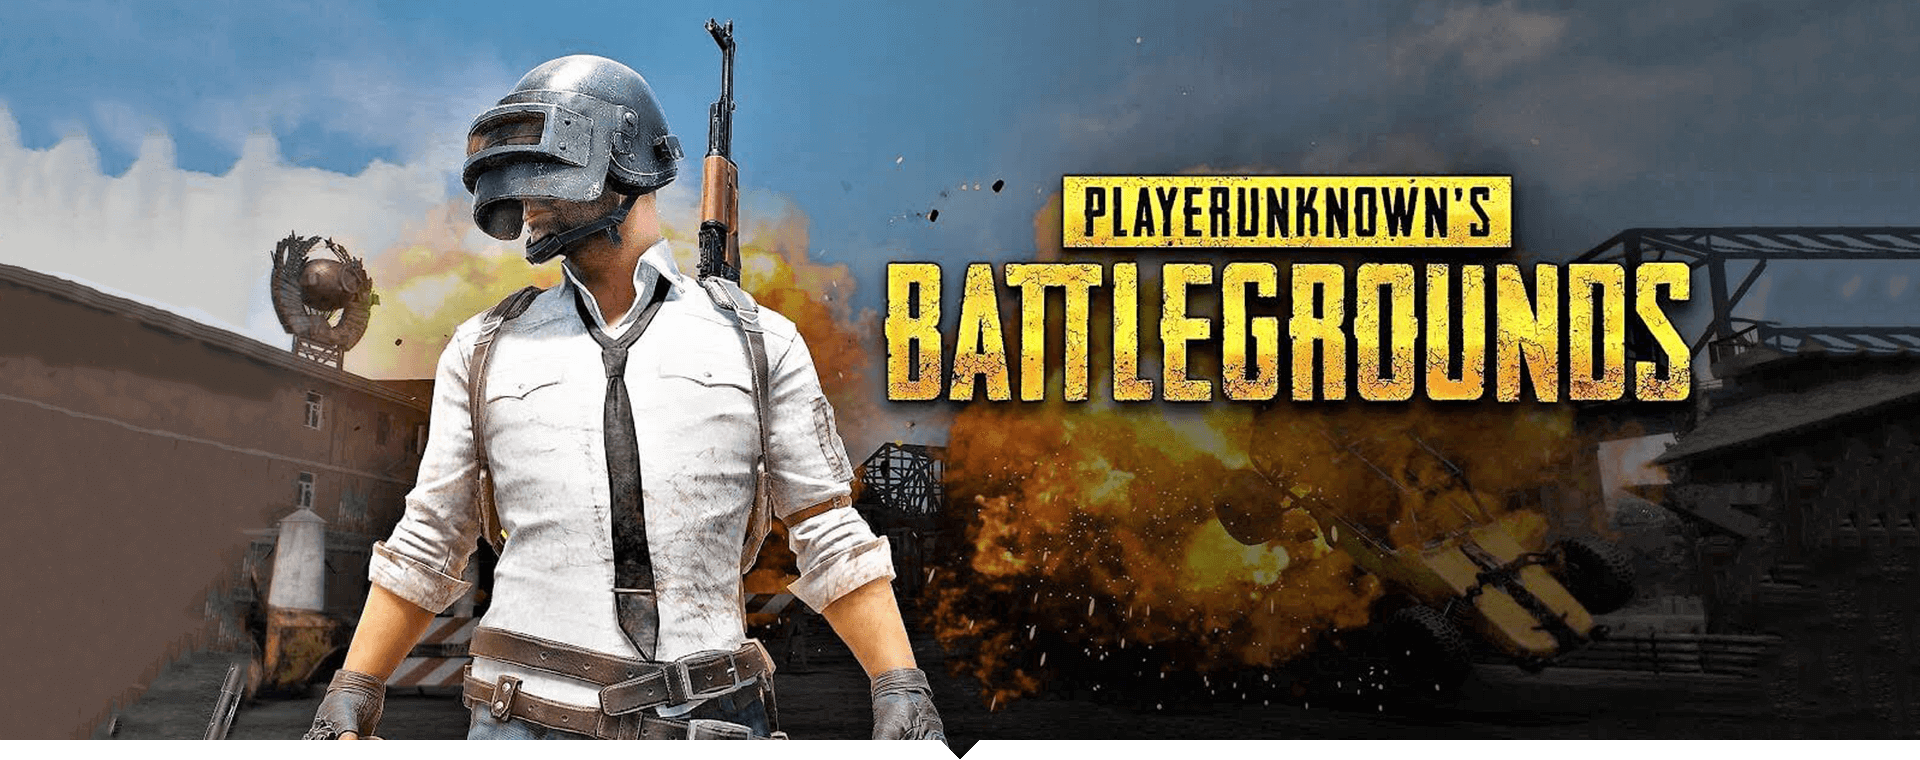 How To Play PUBG on PC via MemuPlay Emulator - Noman Ali - Medium